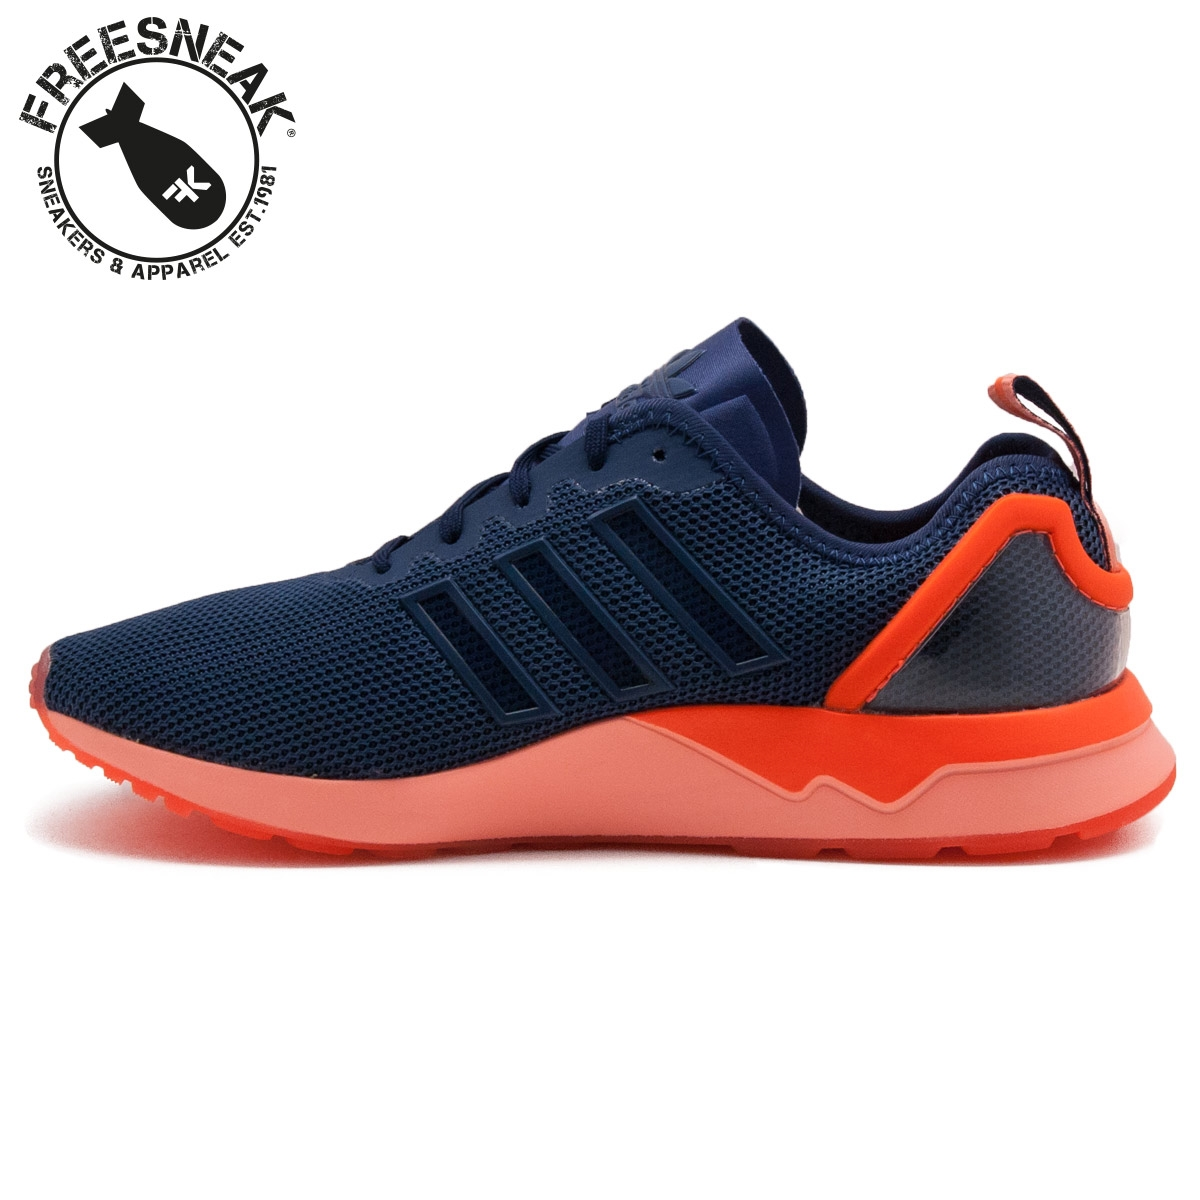 save off 103b9 81049 Adidas Zx Flux Adv Blue Orange wallbank-lfc.co.uk